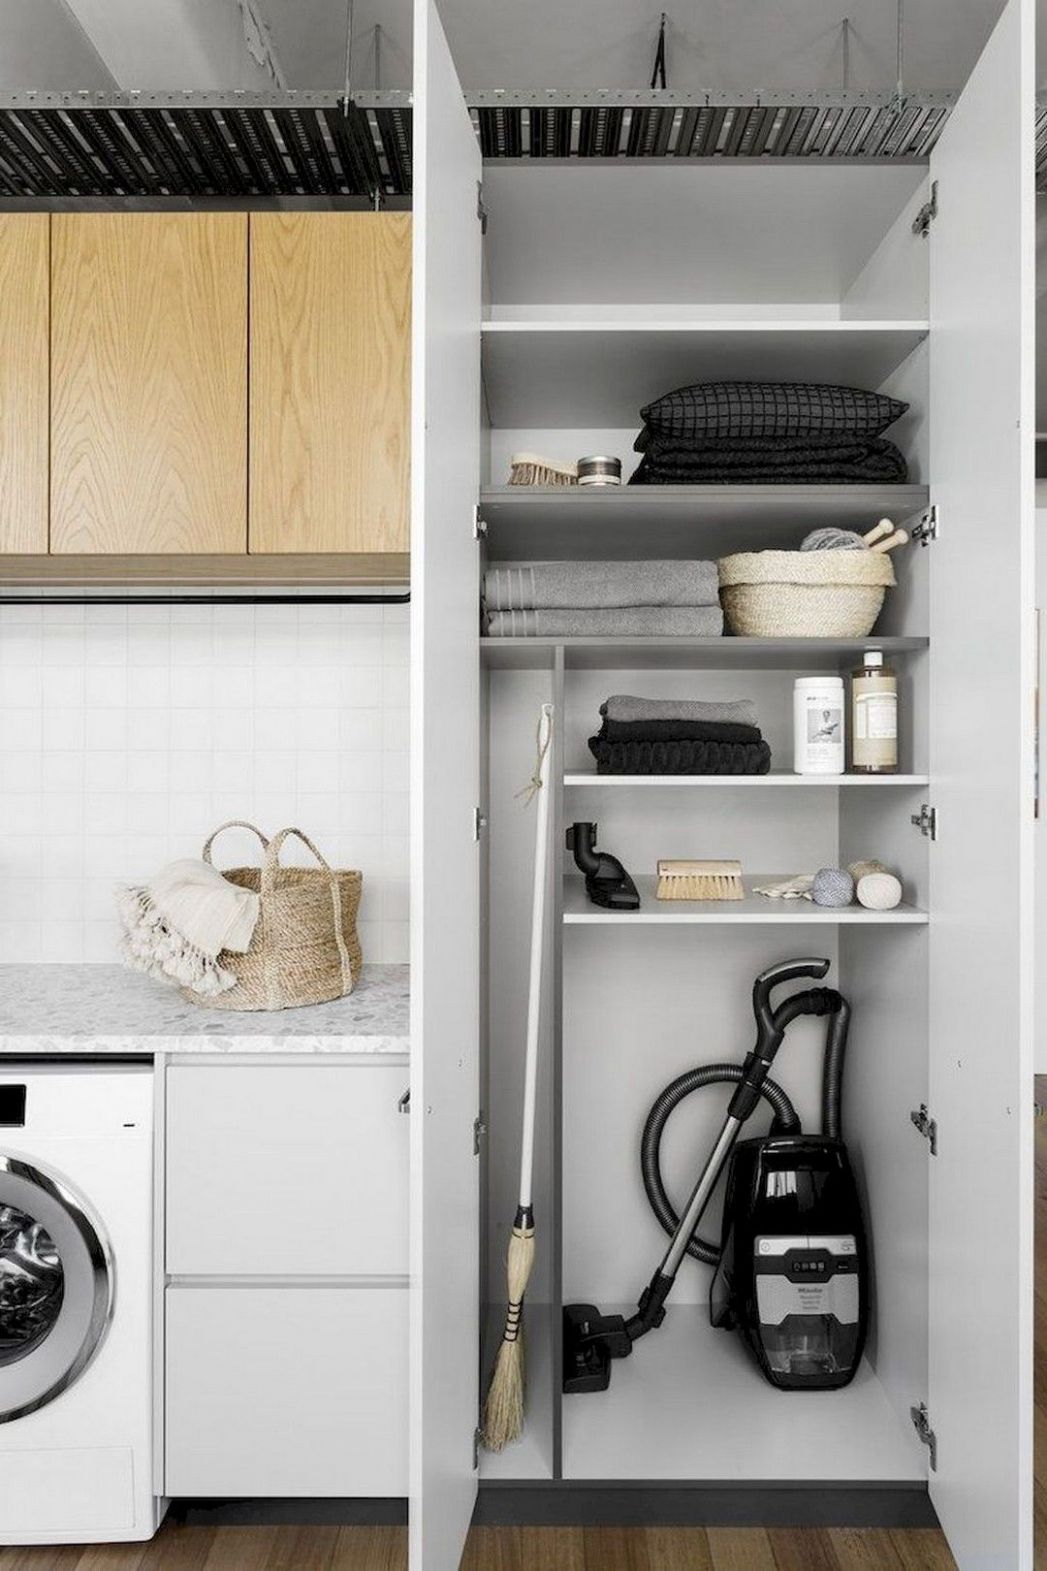 12 Awesome Laundry Room Storage and Organization Ideas (With ..